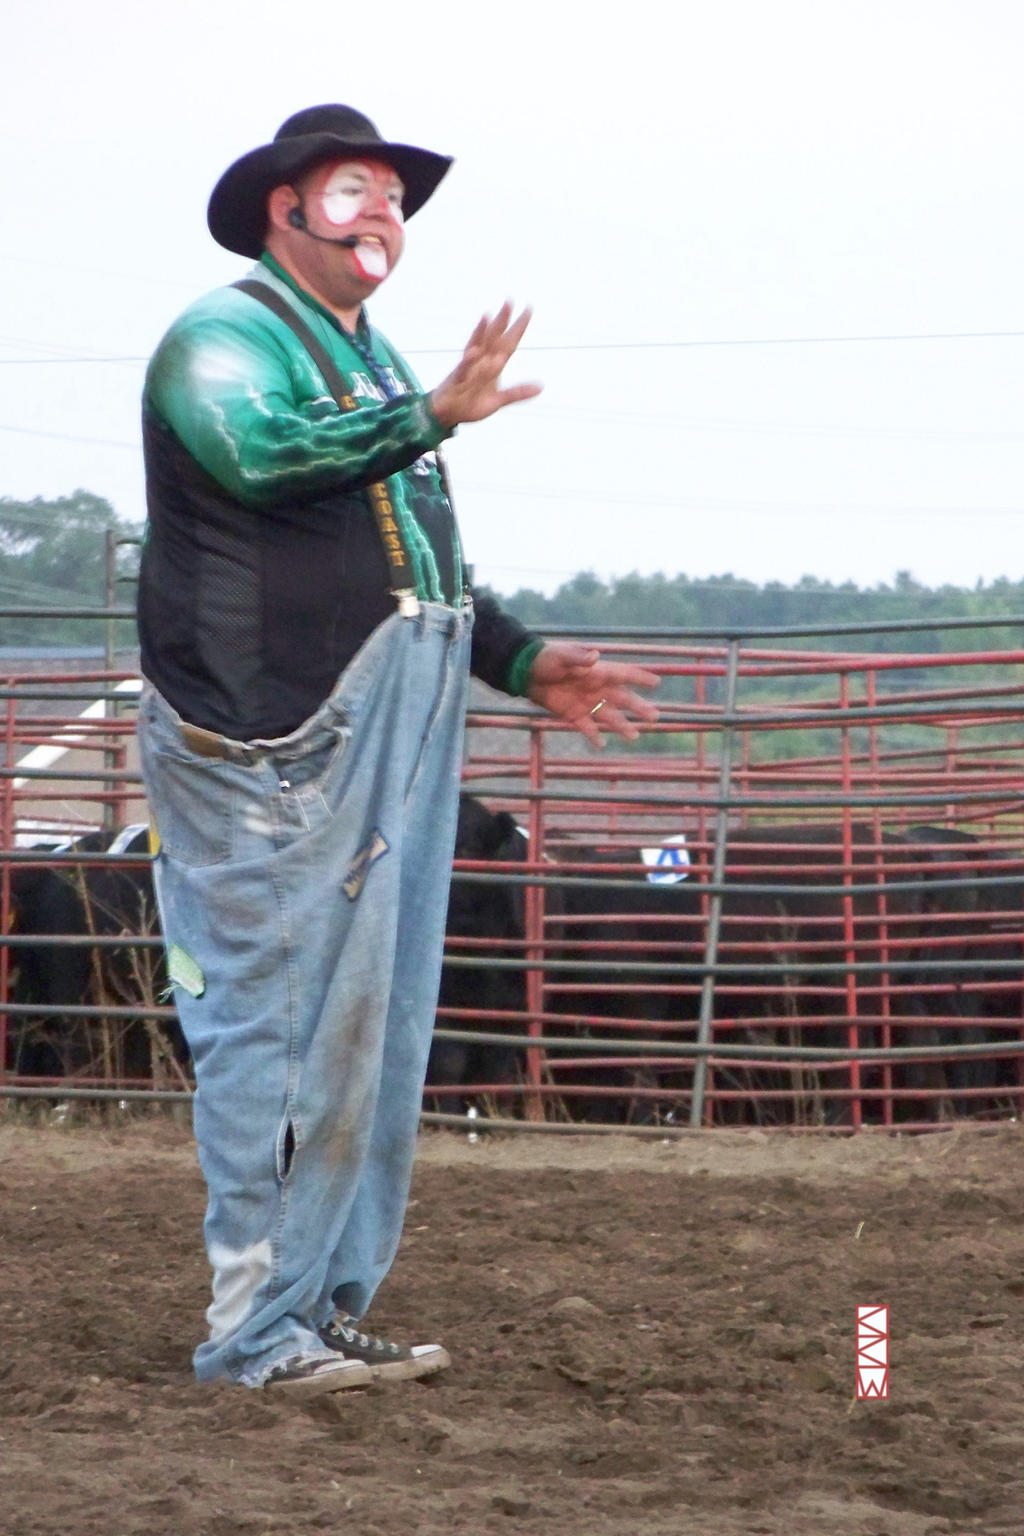 Rodeo Clown at Wild West Days, ViroquaWI 2014 8:08 by Crigger